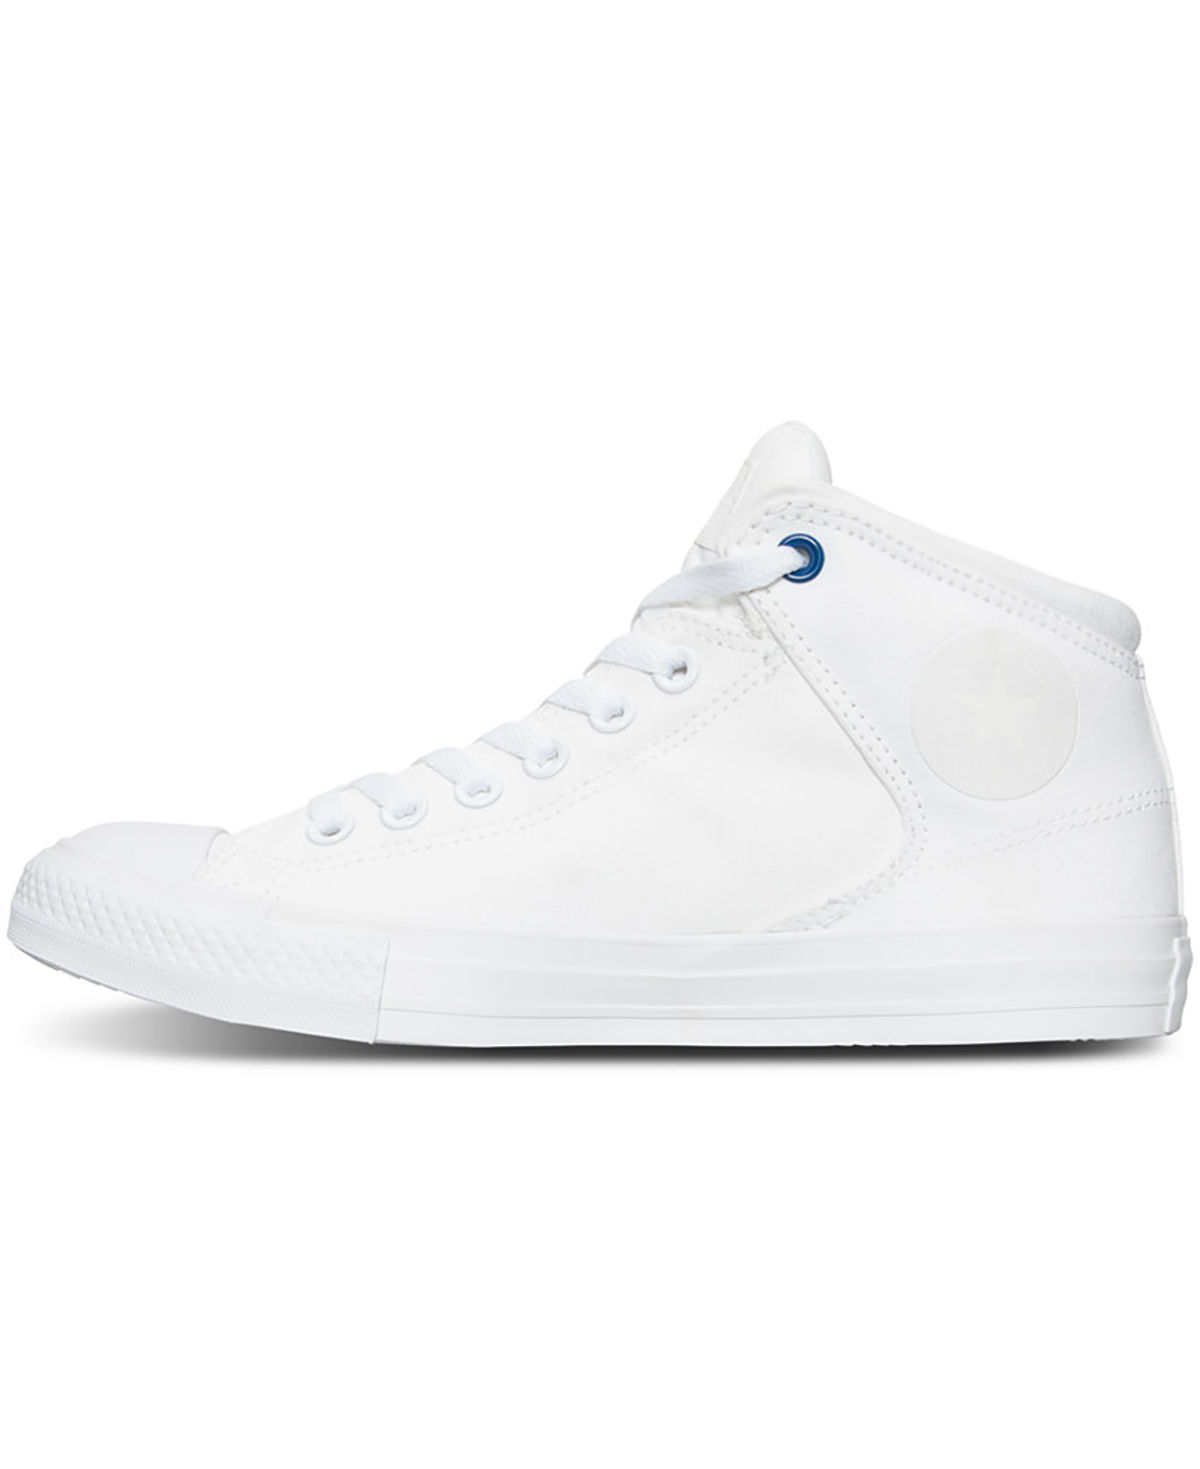 1200x1469 Converse Chuck Taylor All Star High Street Mid Adult Casual Shoe